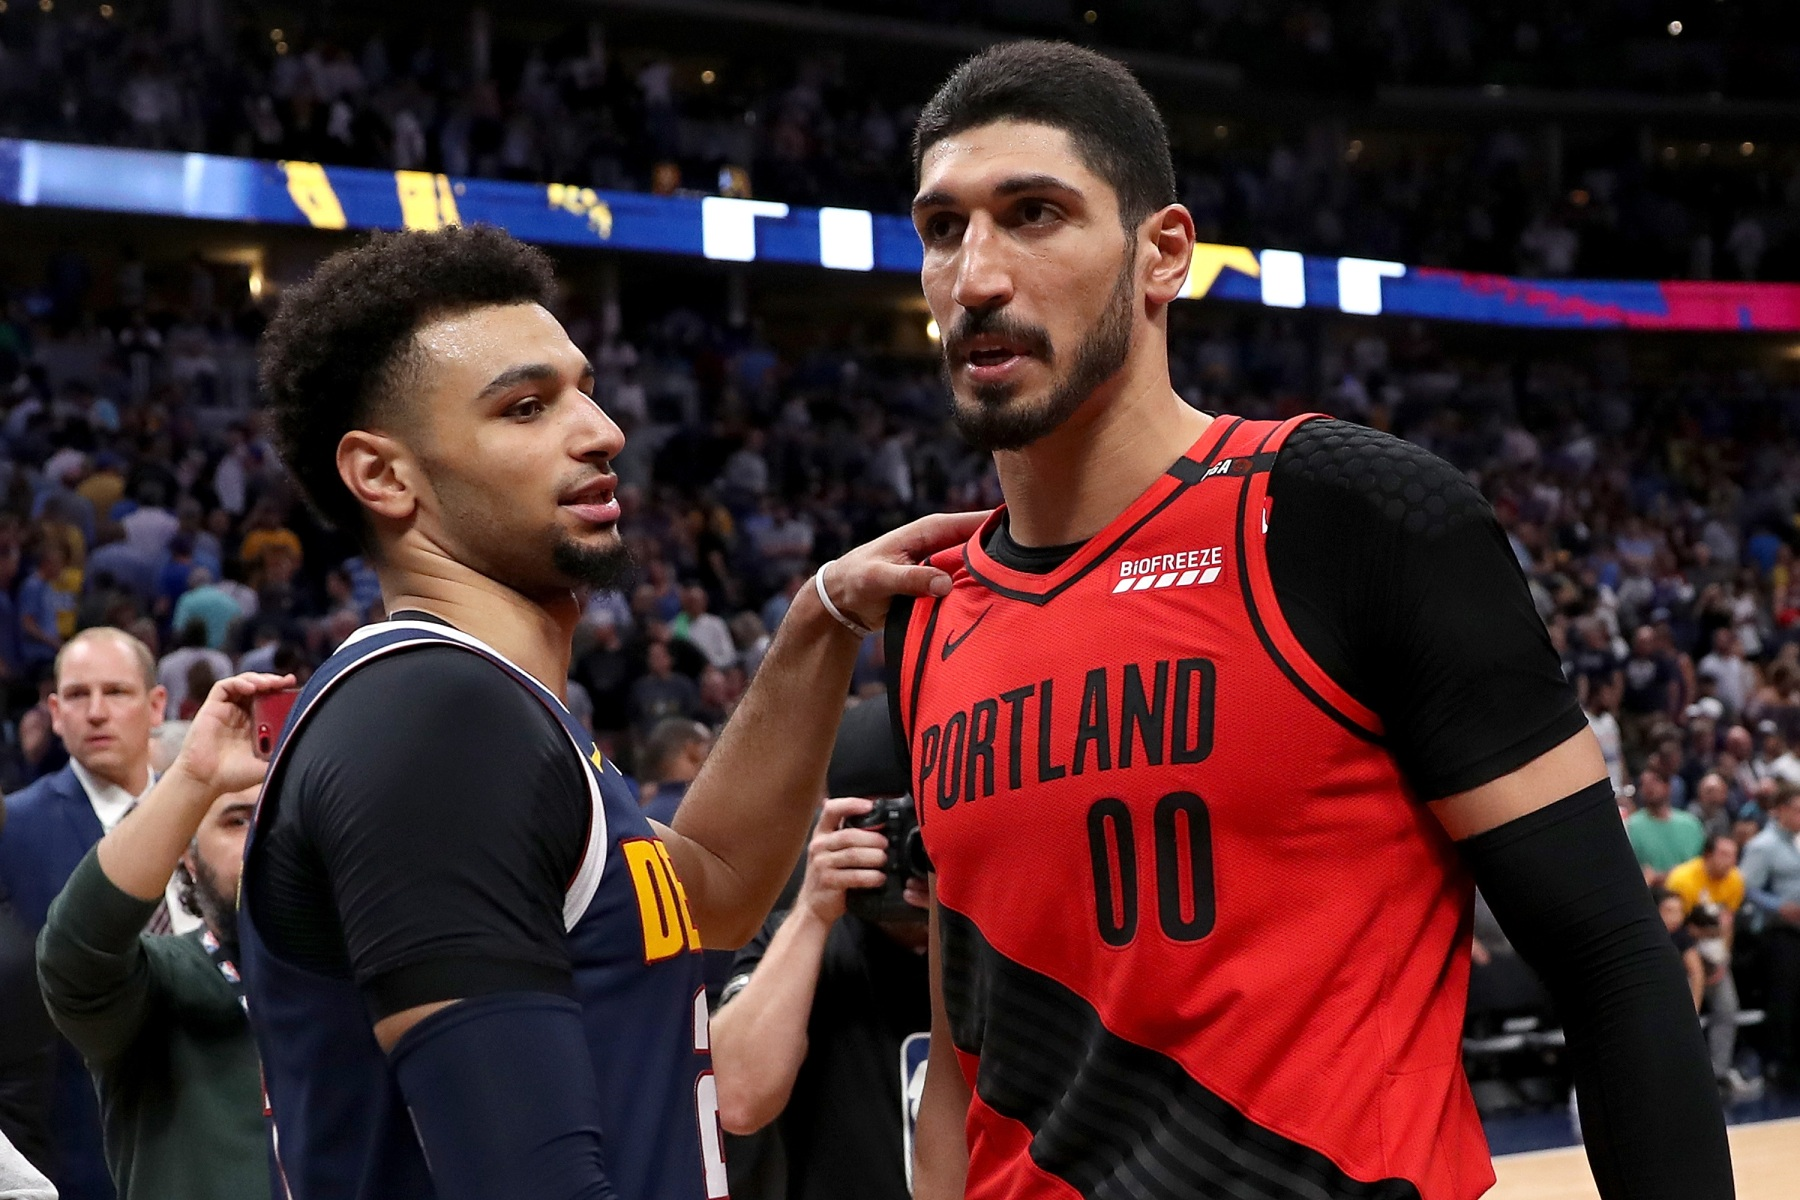 ac1880eab07 Turkey won t air the Western Conference Finals because they include Enes  Kanter. (Matthew Stockman  Getty)